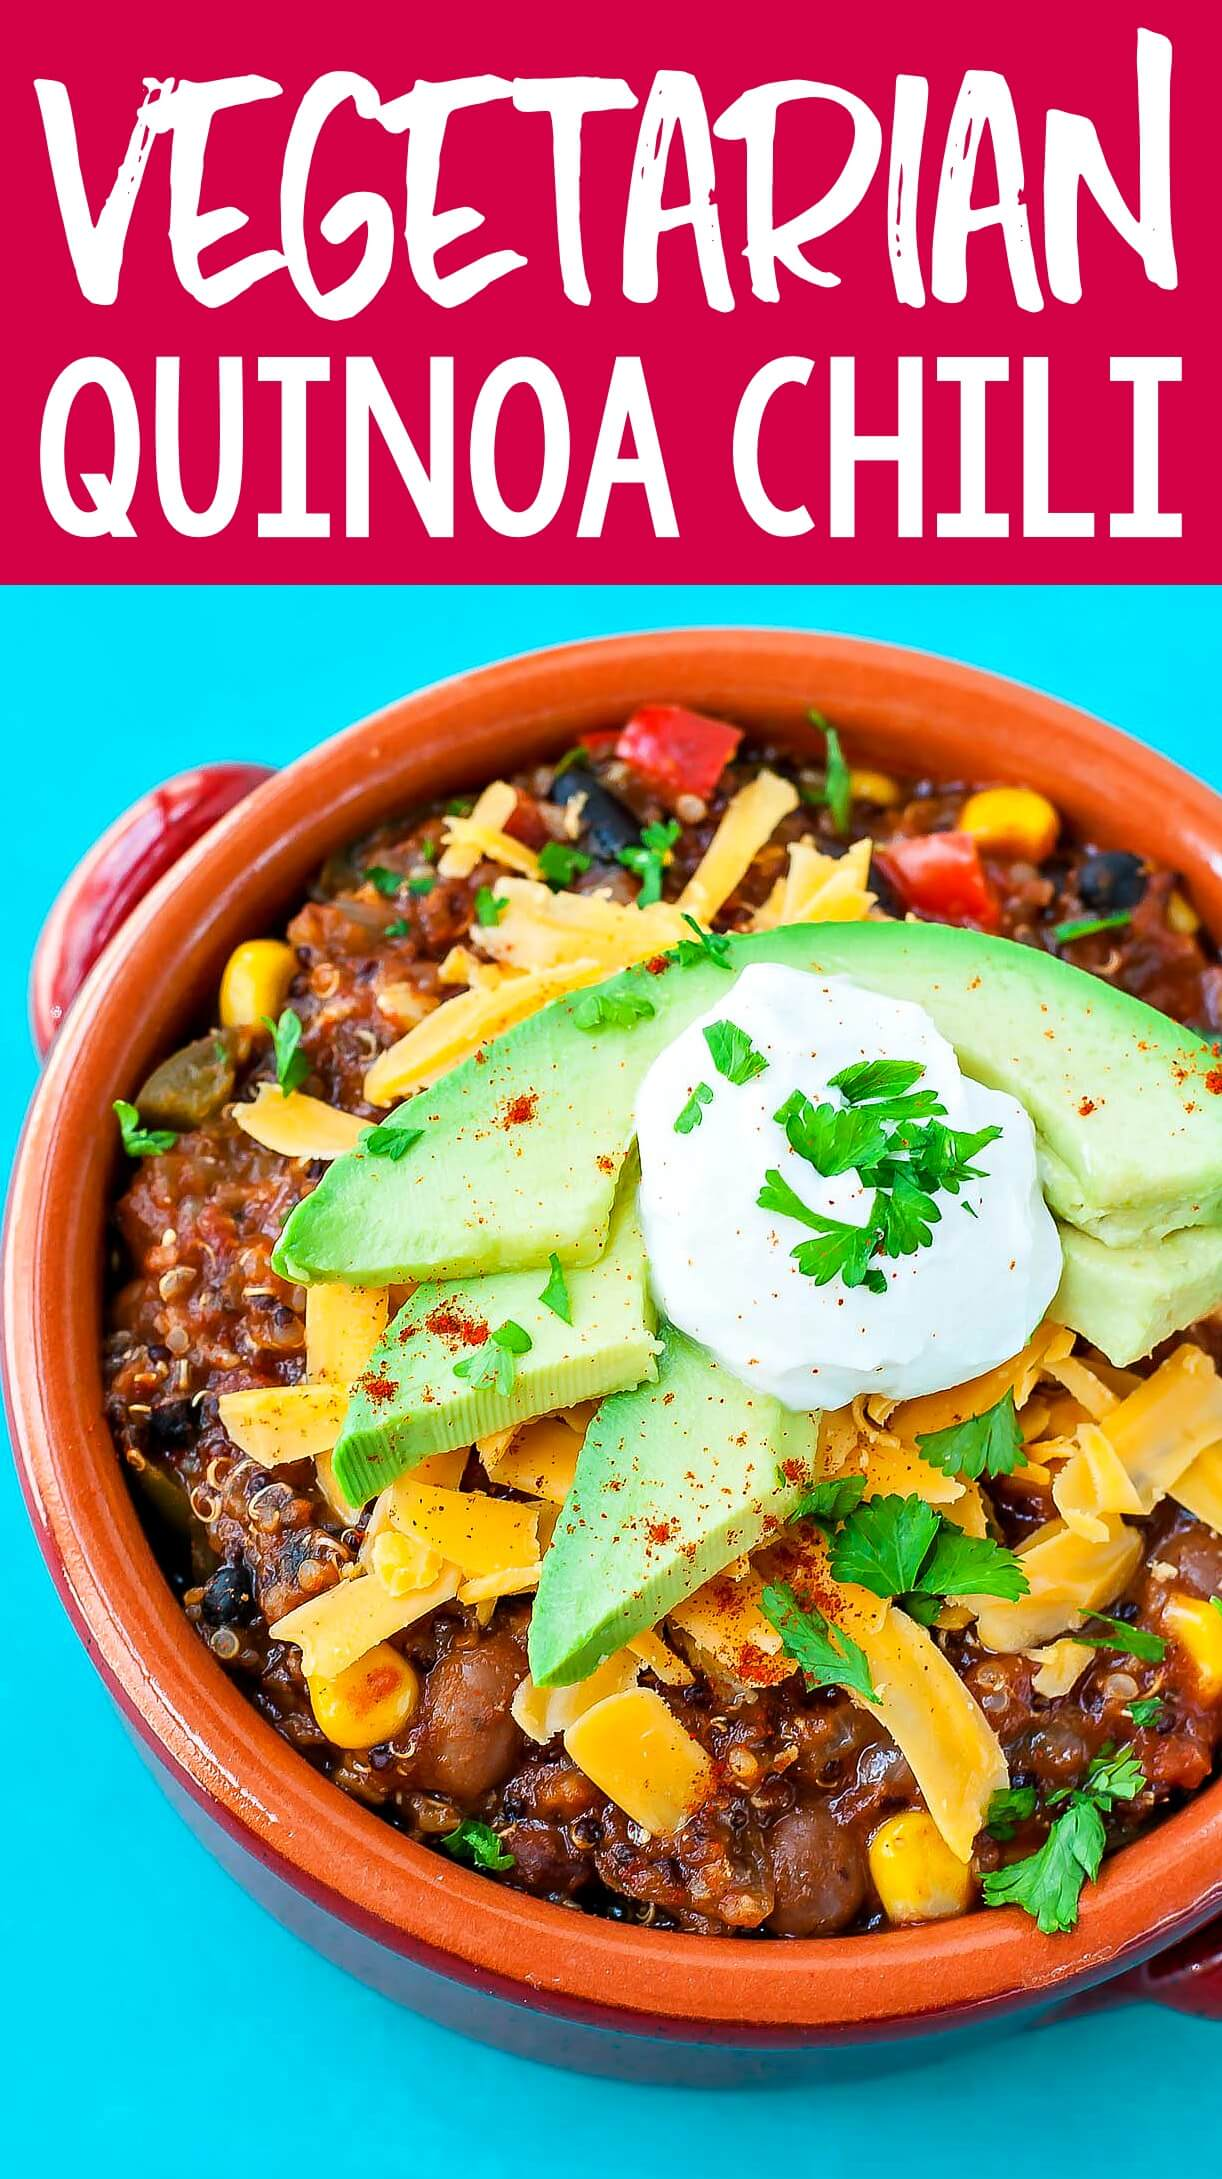 This is the chili that changed our minds about meatless chili! We absolutely LOVE this healthy vegetarian quinoa chili!